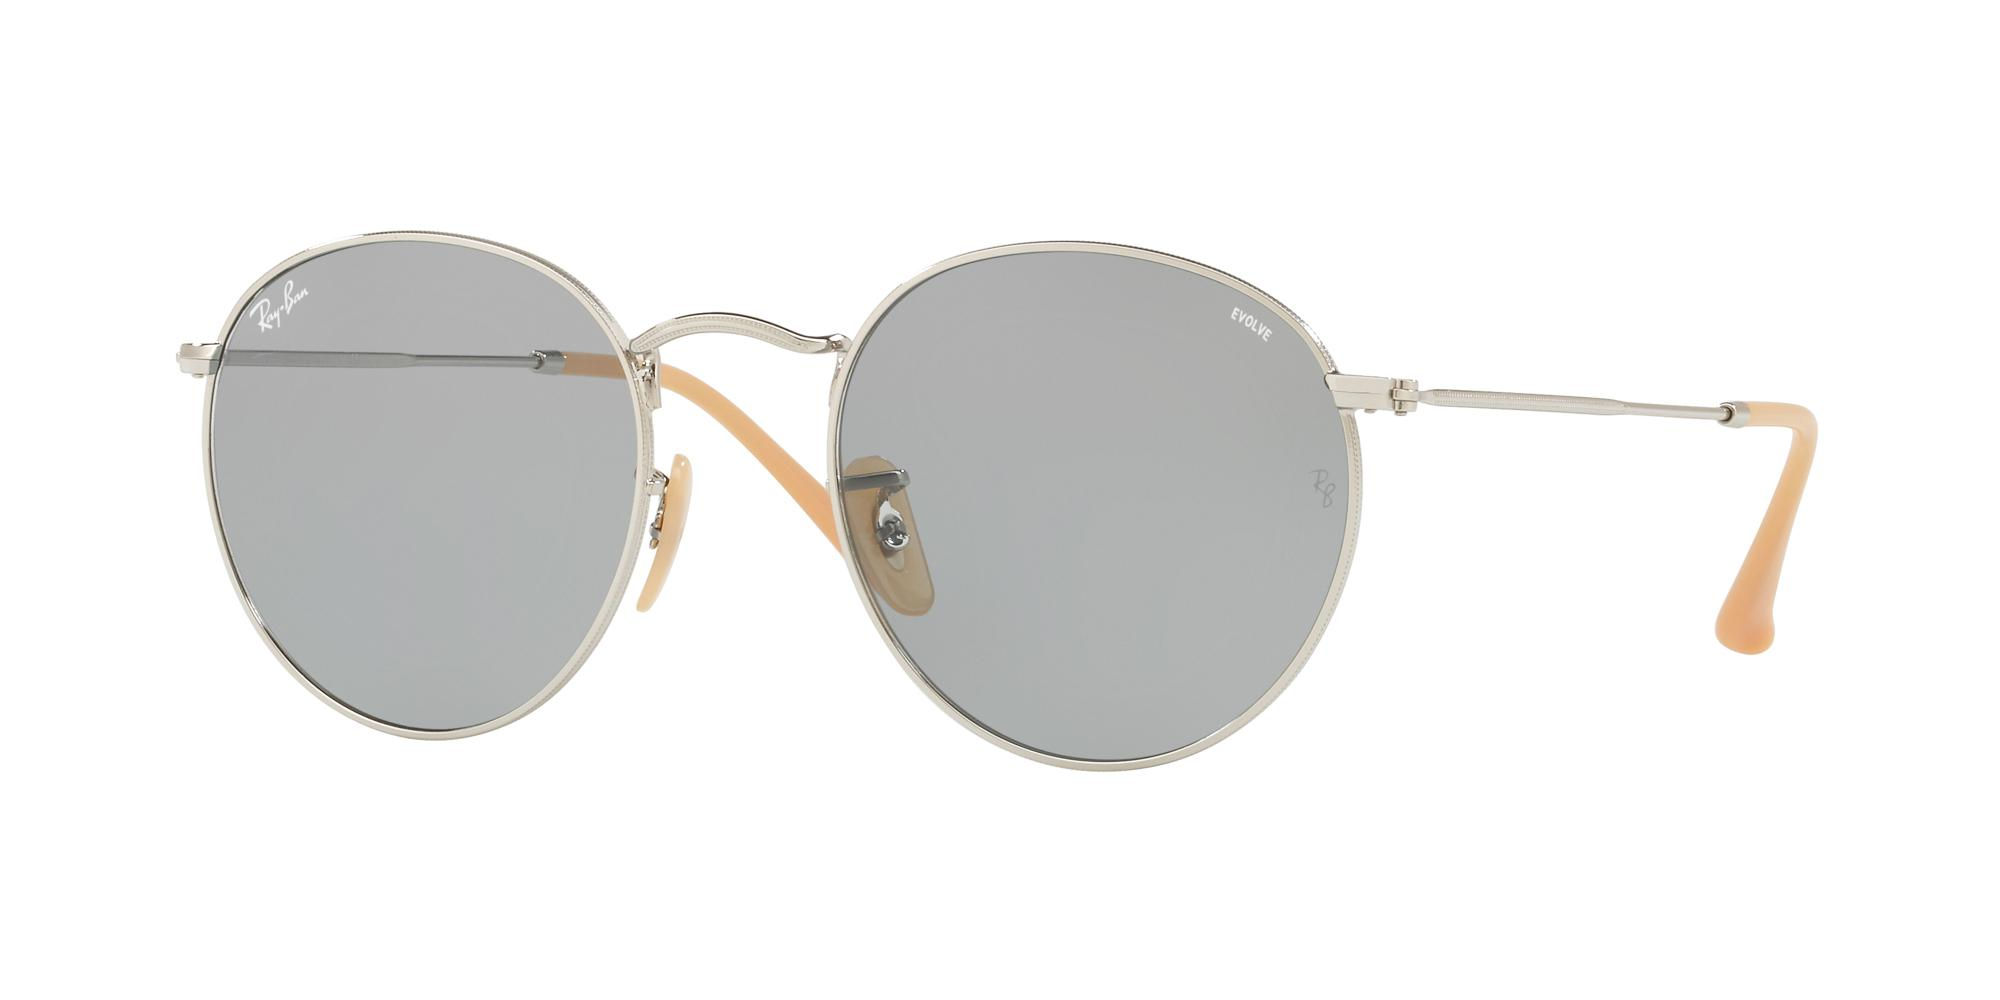 Ray-Ban RB 3447 029 Round Metal Sunglasses | Sunglasses Direct